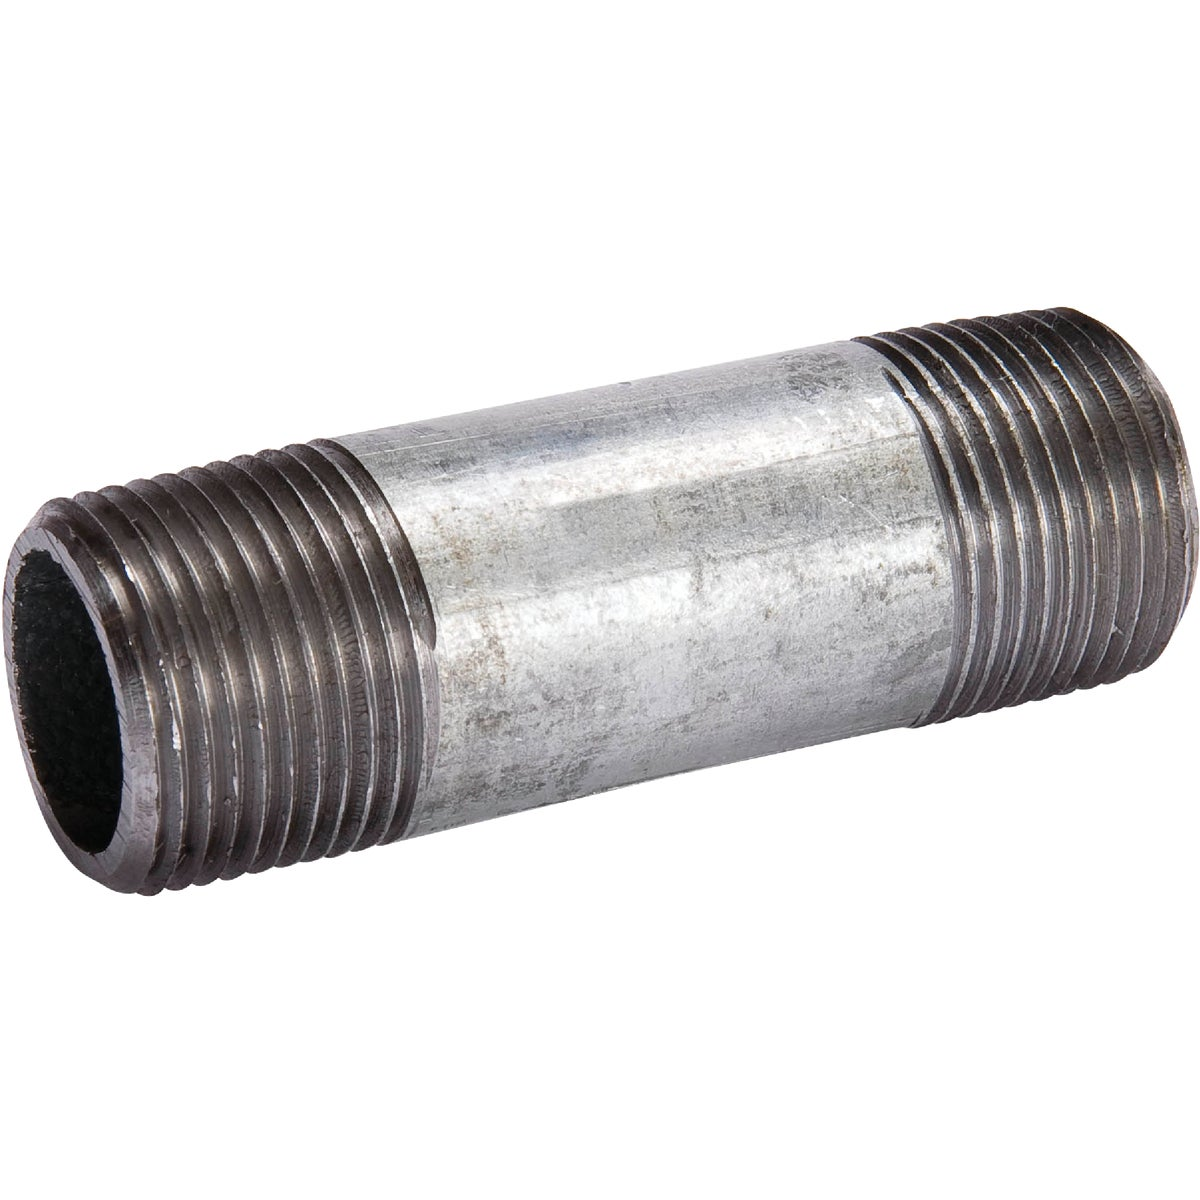 1-1/2X6 GALV NIPPLE - 10810 by Southland Pipe Nippl